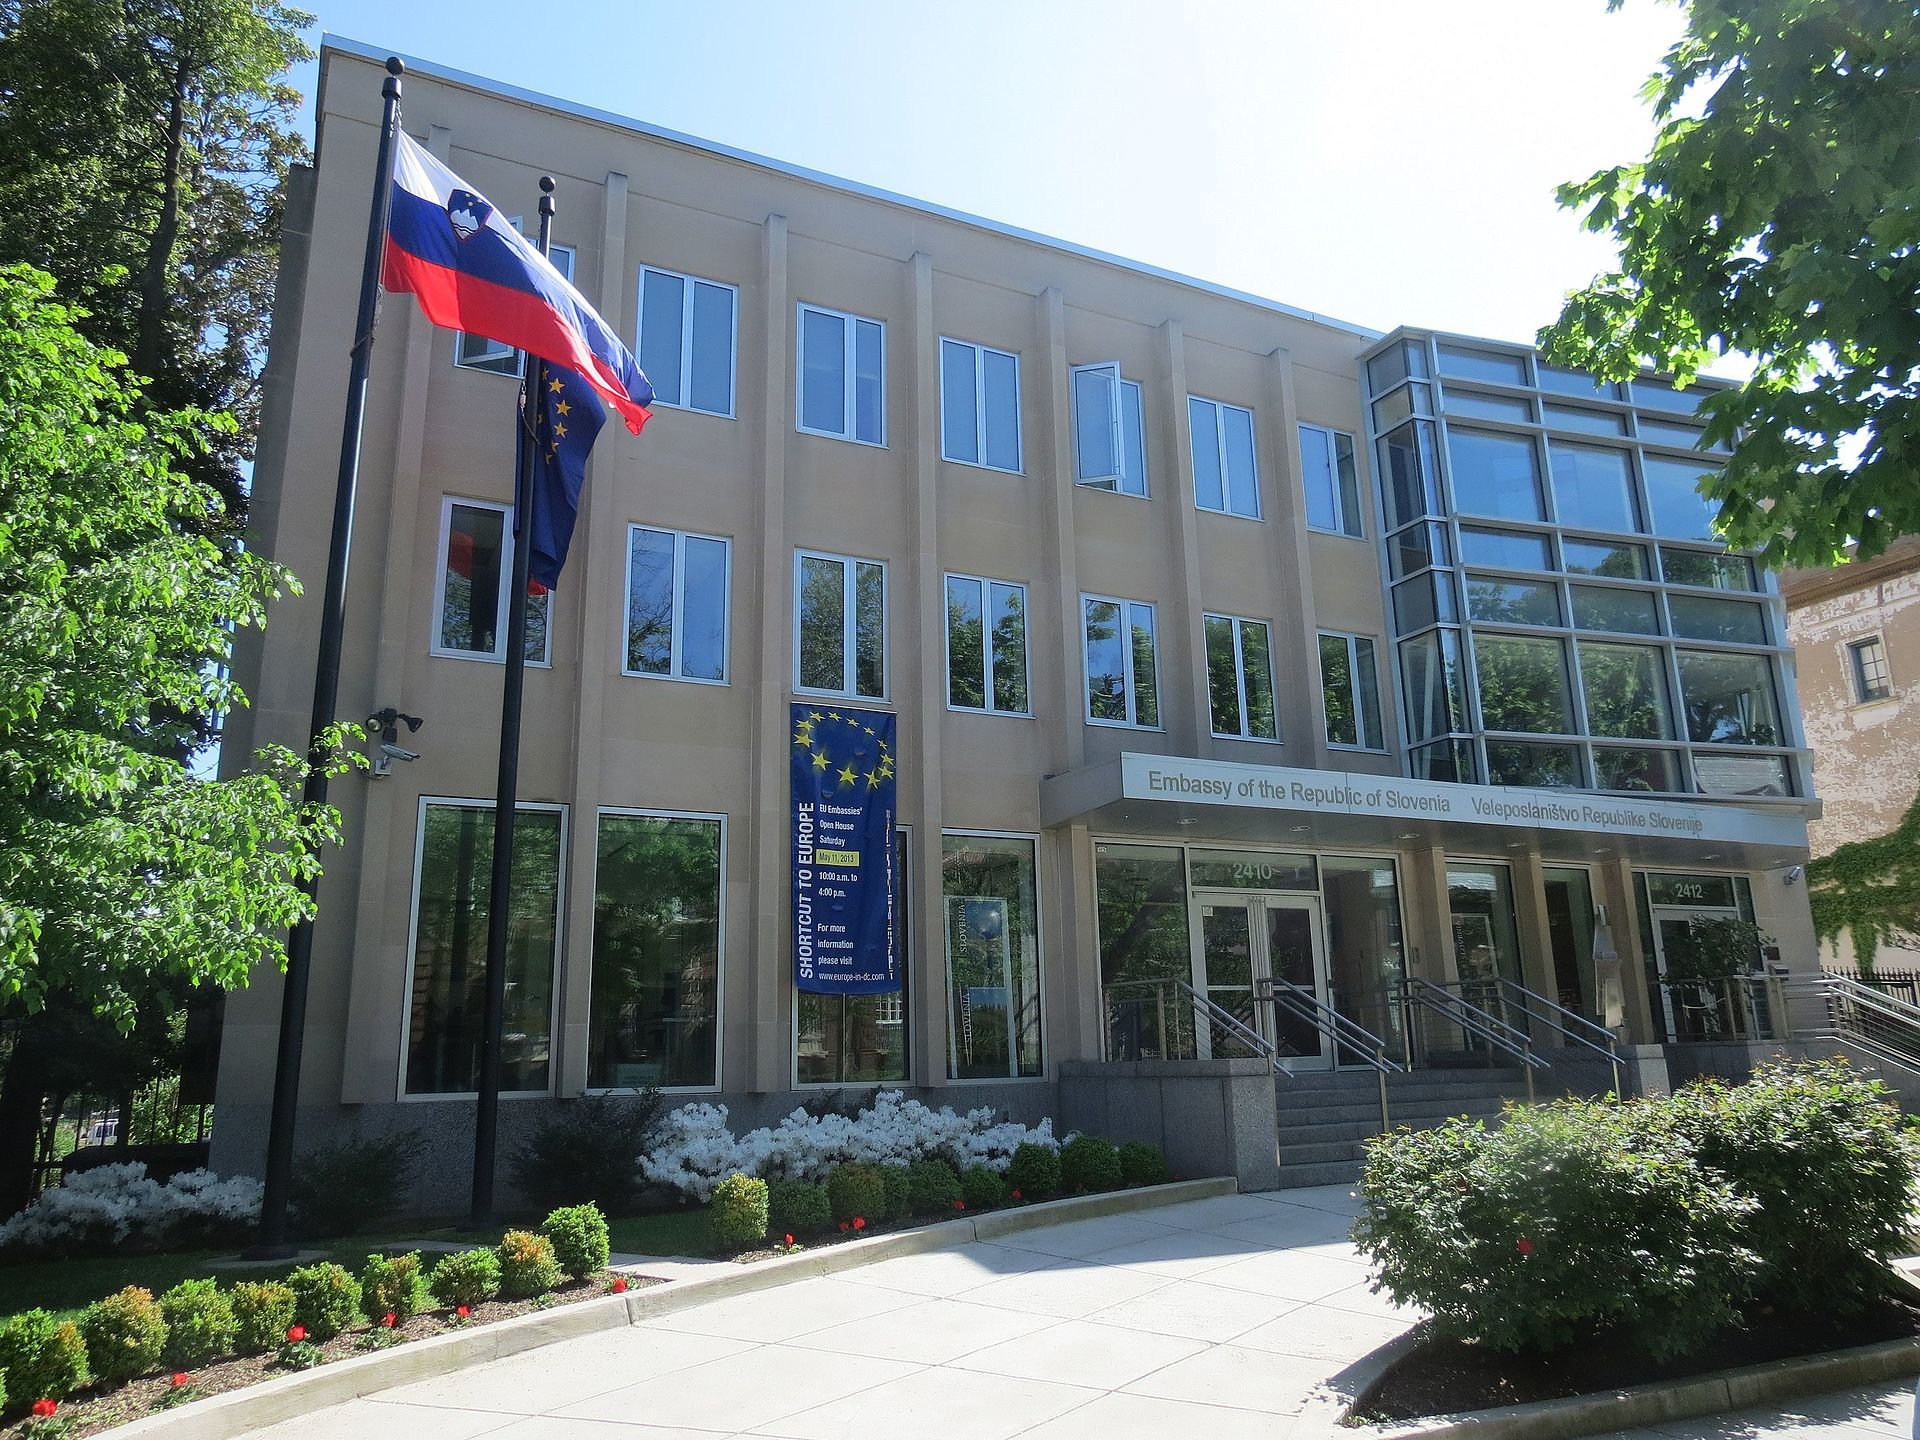 The Slovenian Embassy is located on Embassy Row.